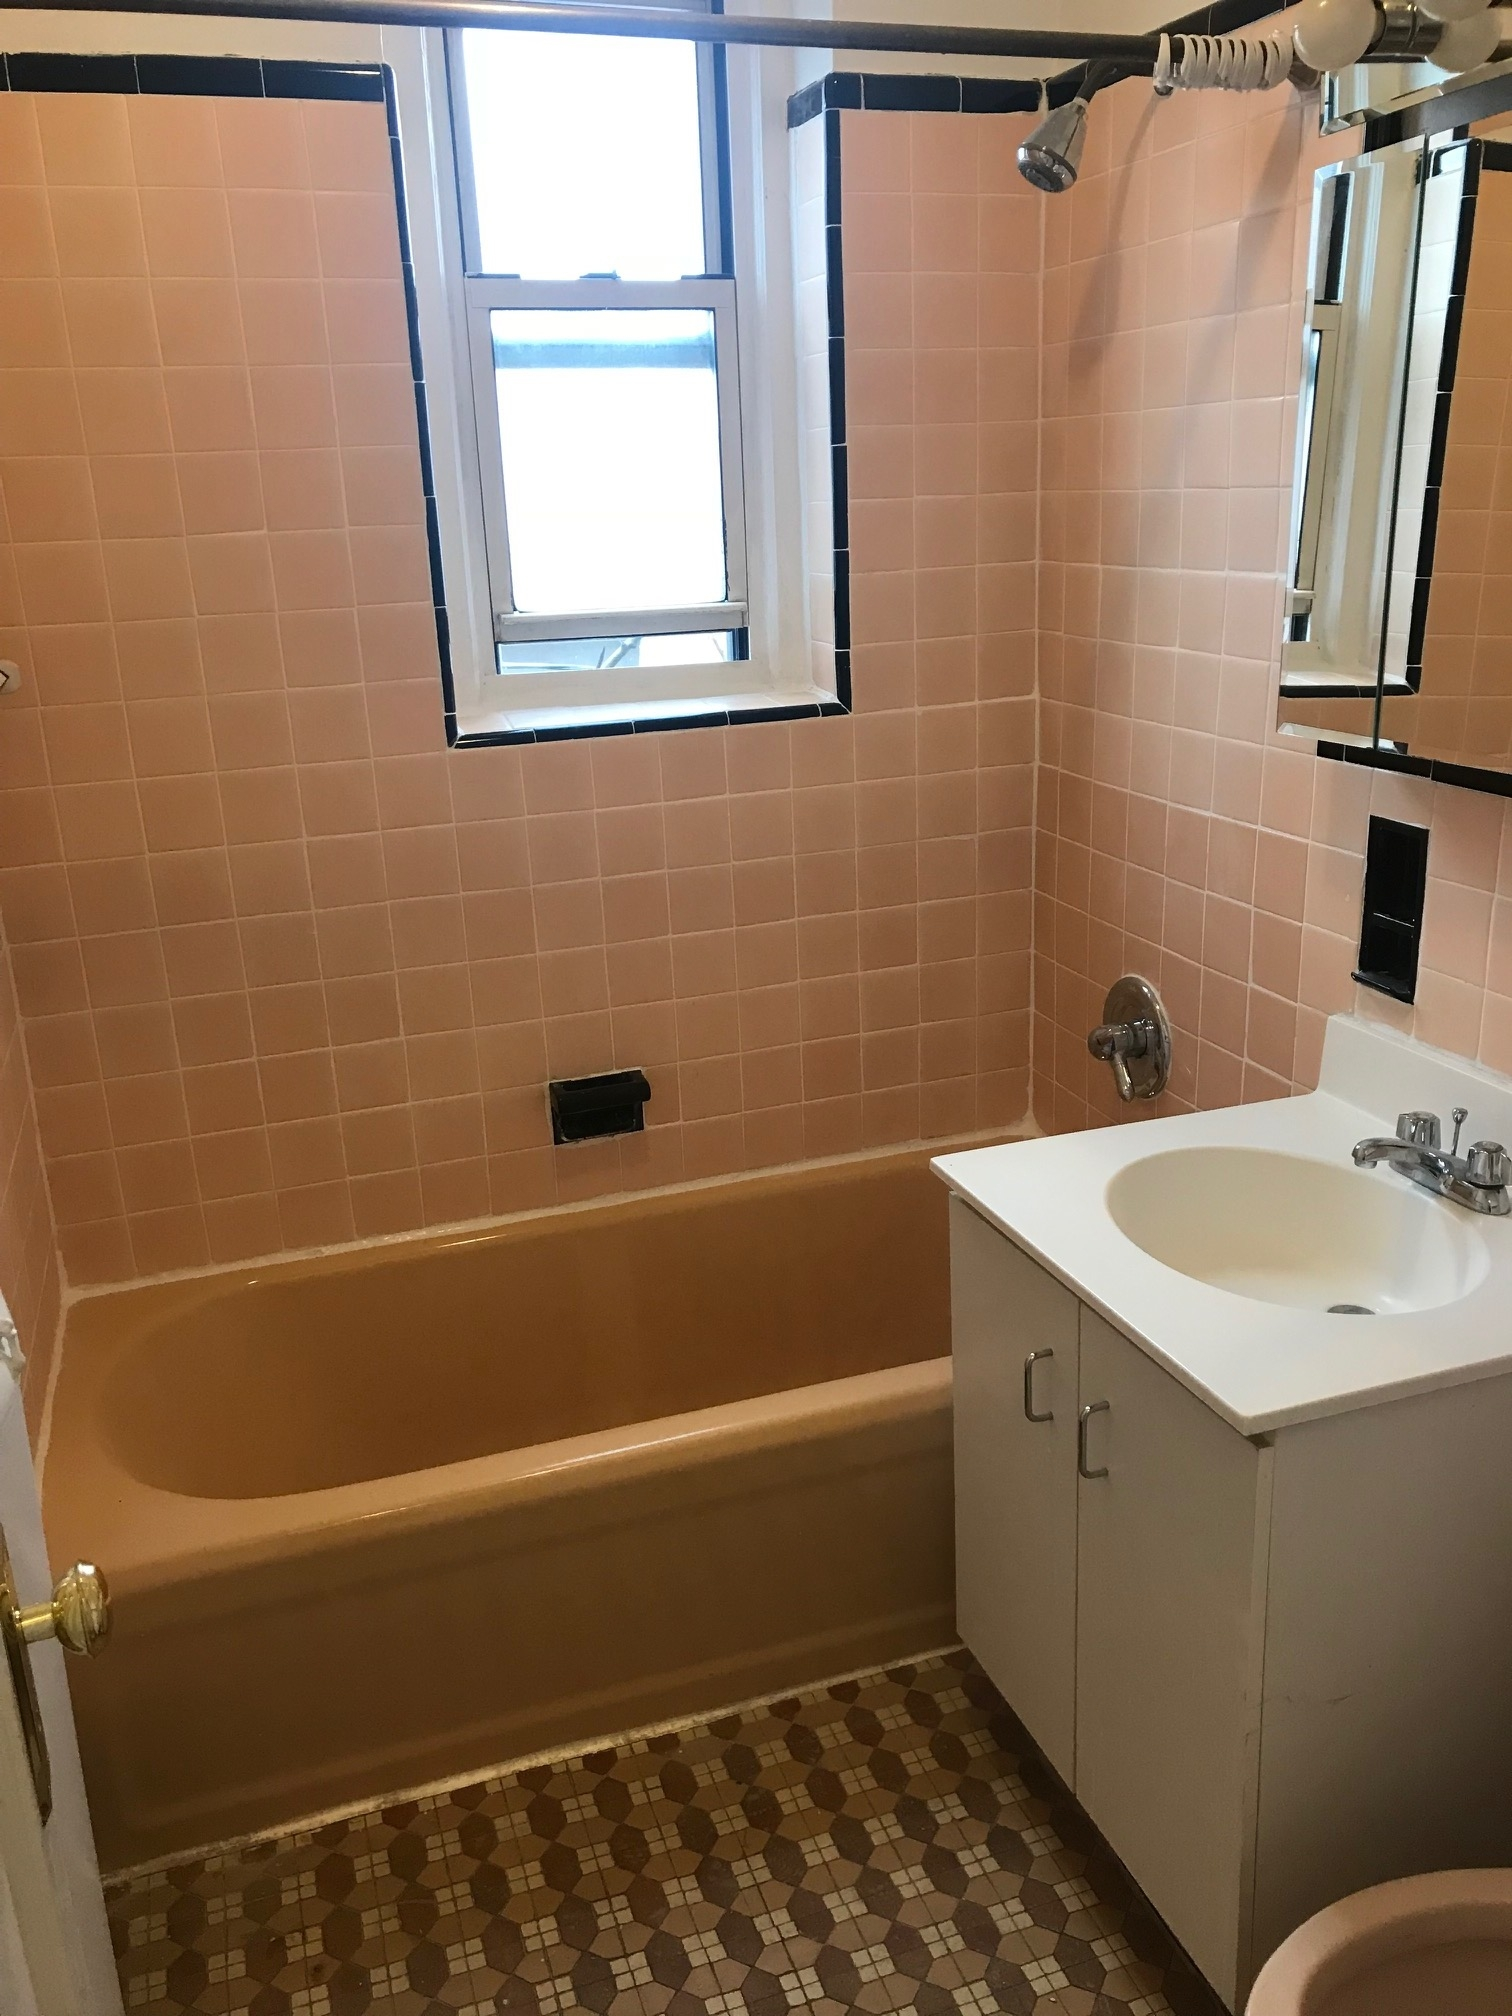 Apartment in Forest Hills - 108th Street  Queens, NY 11375